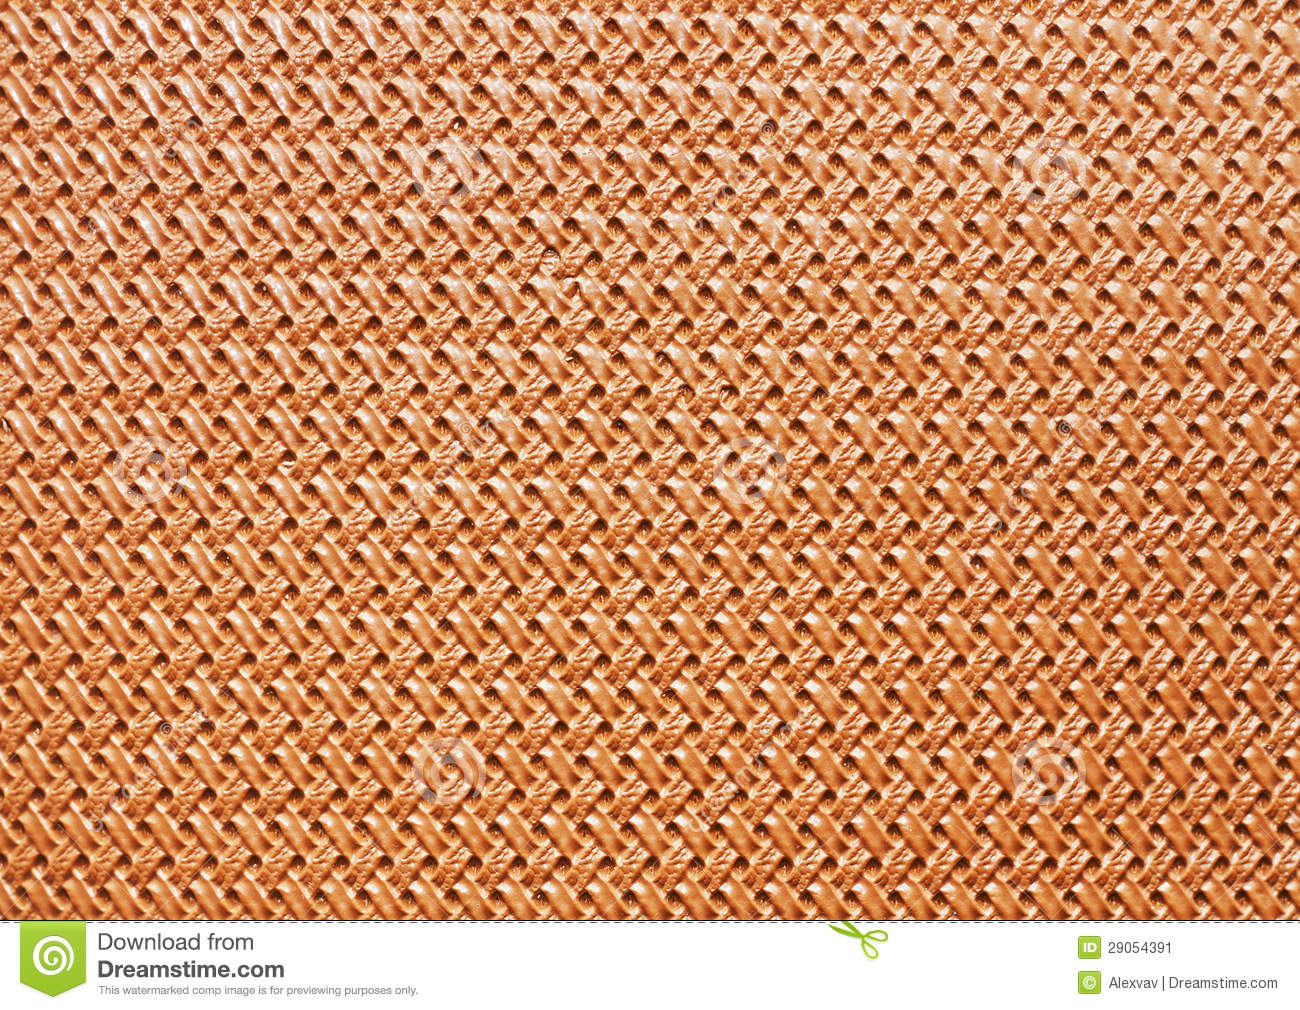 Braided beige leather texture close-up horisontal orientation.